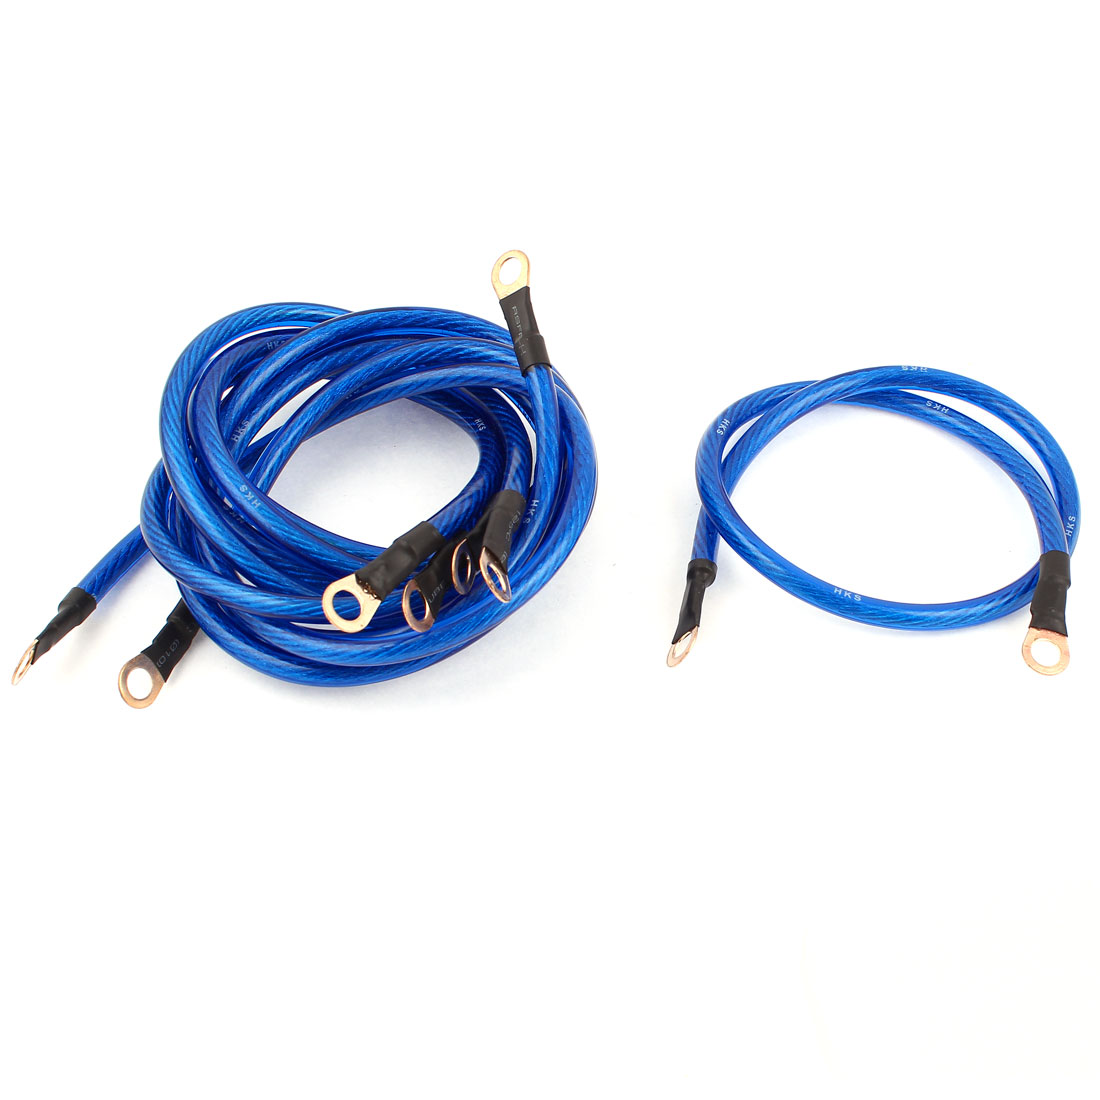 Auto Car Universal Ground Grounding Wire Cable Kit Blue 5 in 1